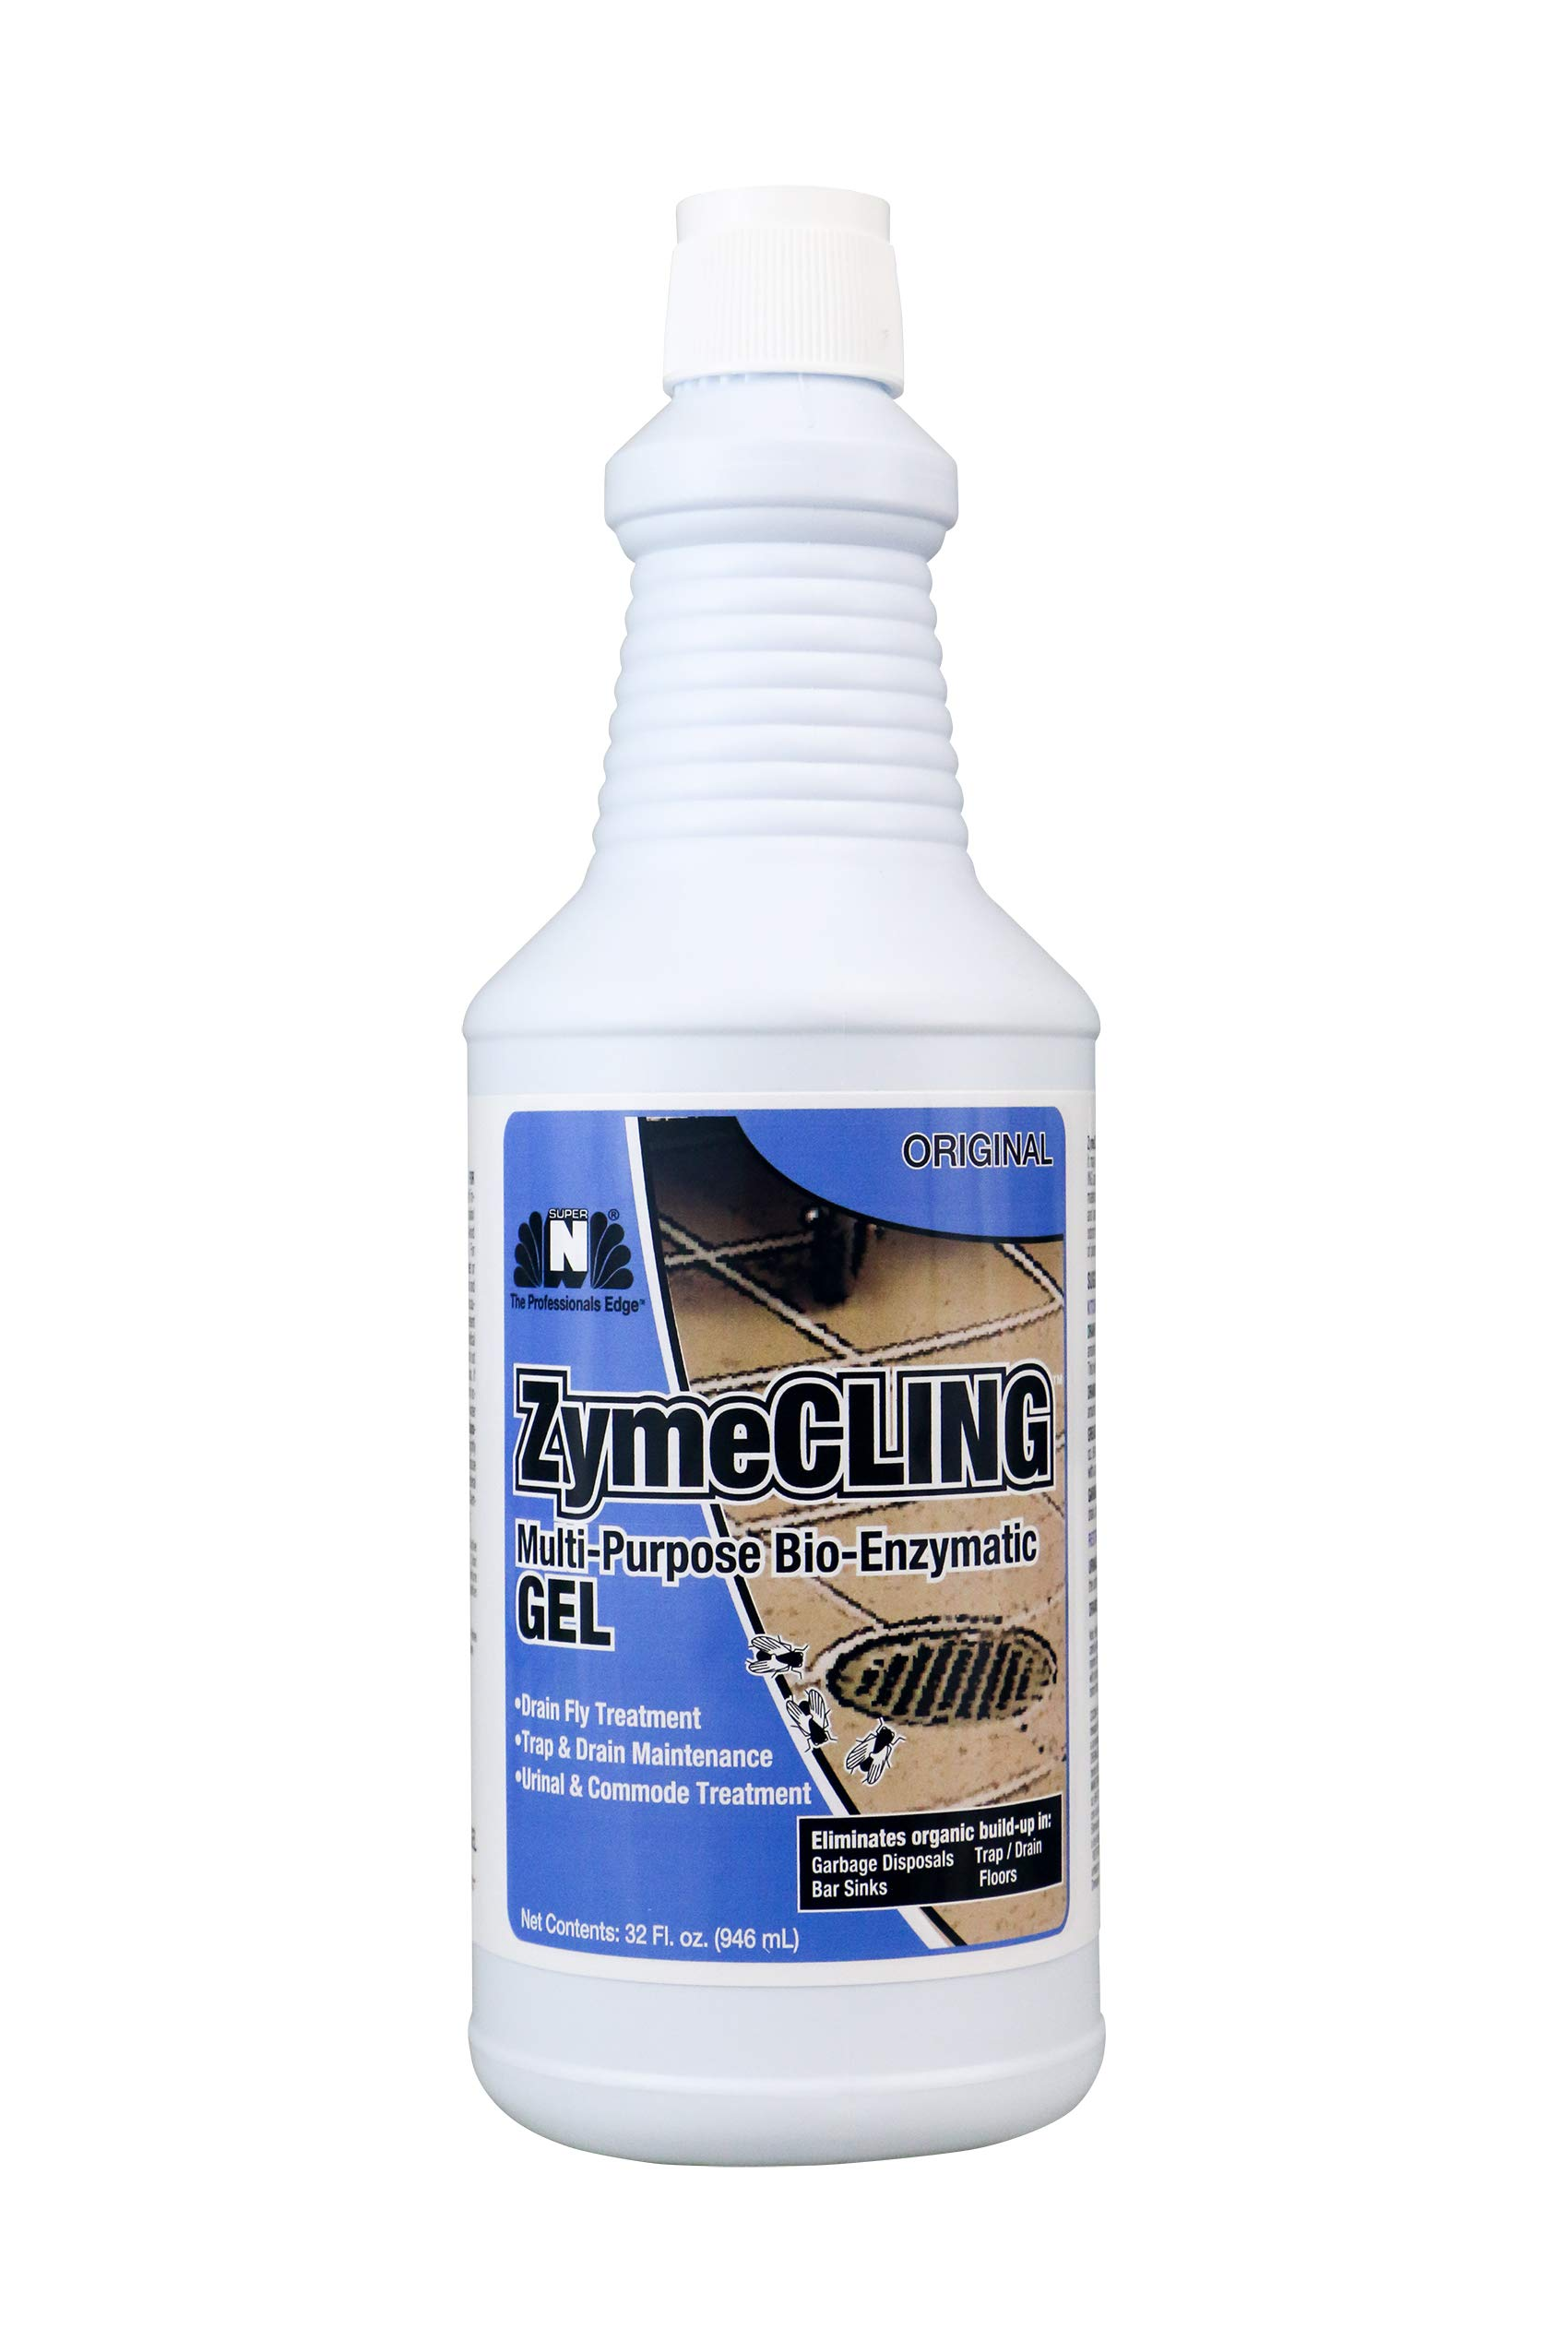 Nilodor ZymeCLING Multi-Purpose Gel with Bacteria Strains and Enzymes - 6 Quart case